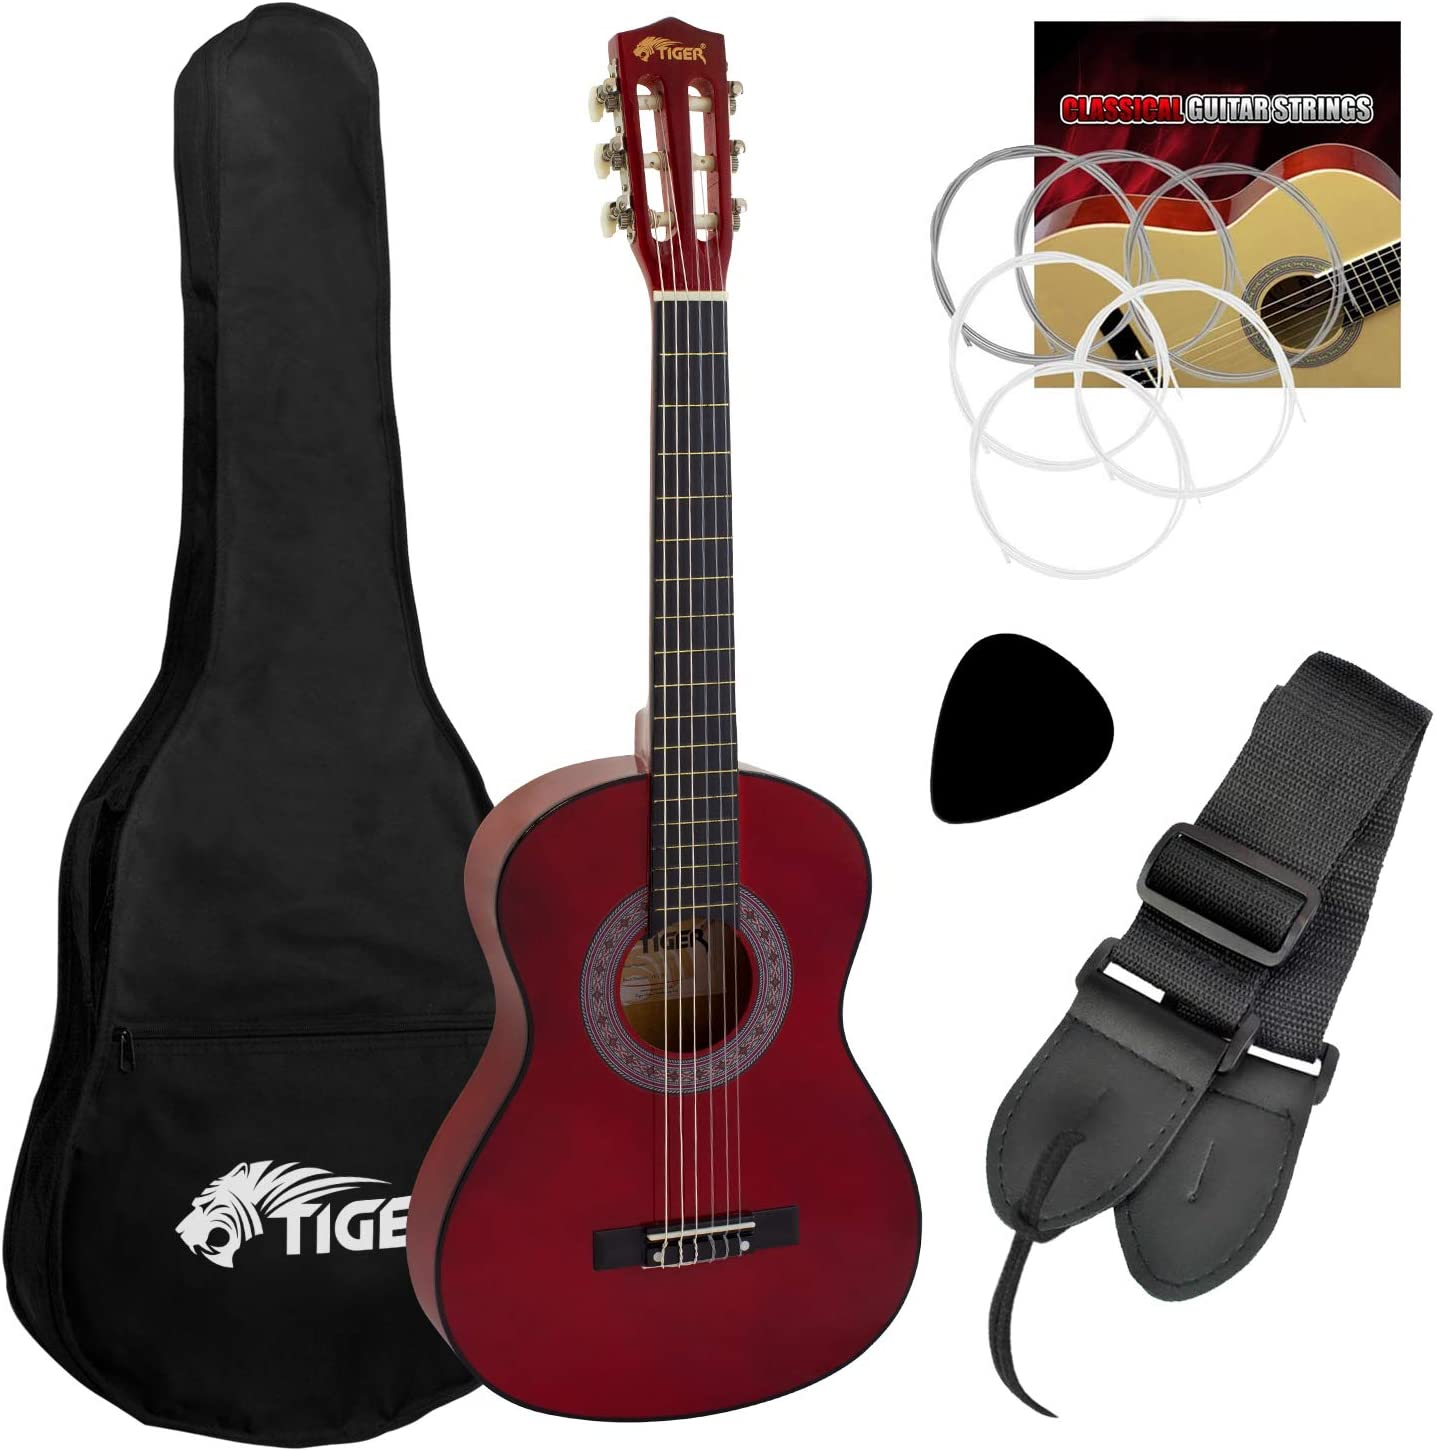 Tiger - Set de guitarra clásica de 3/4, color rojo